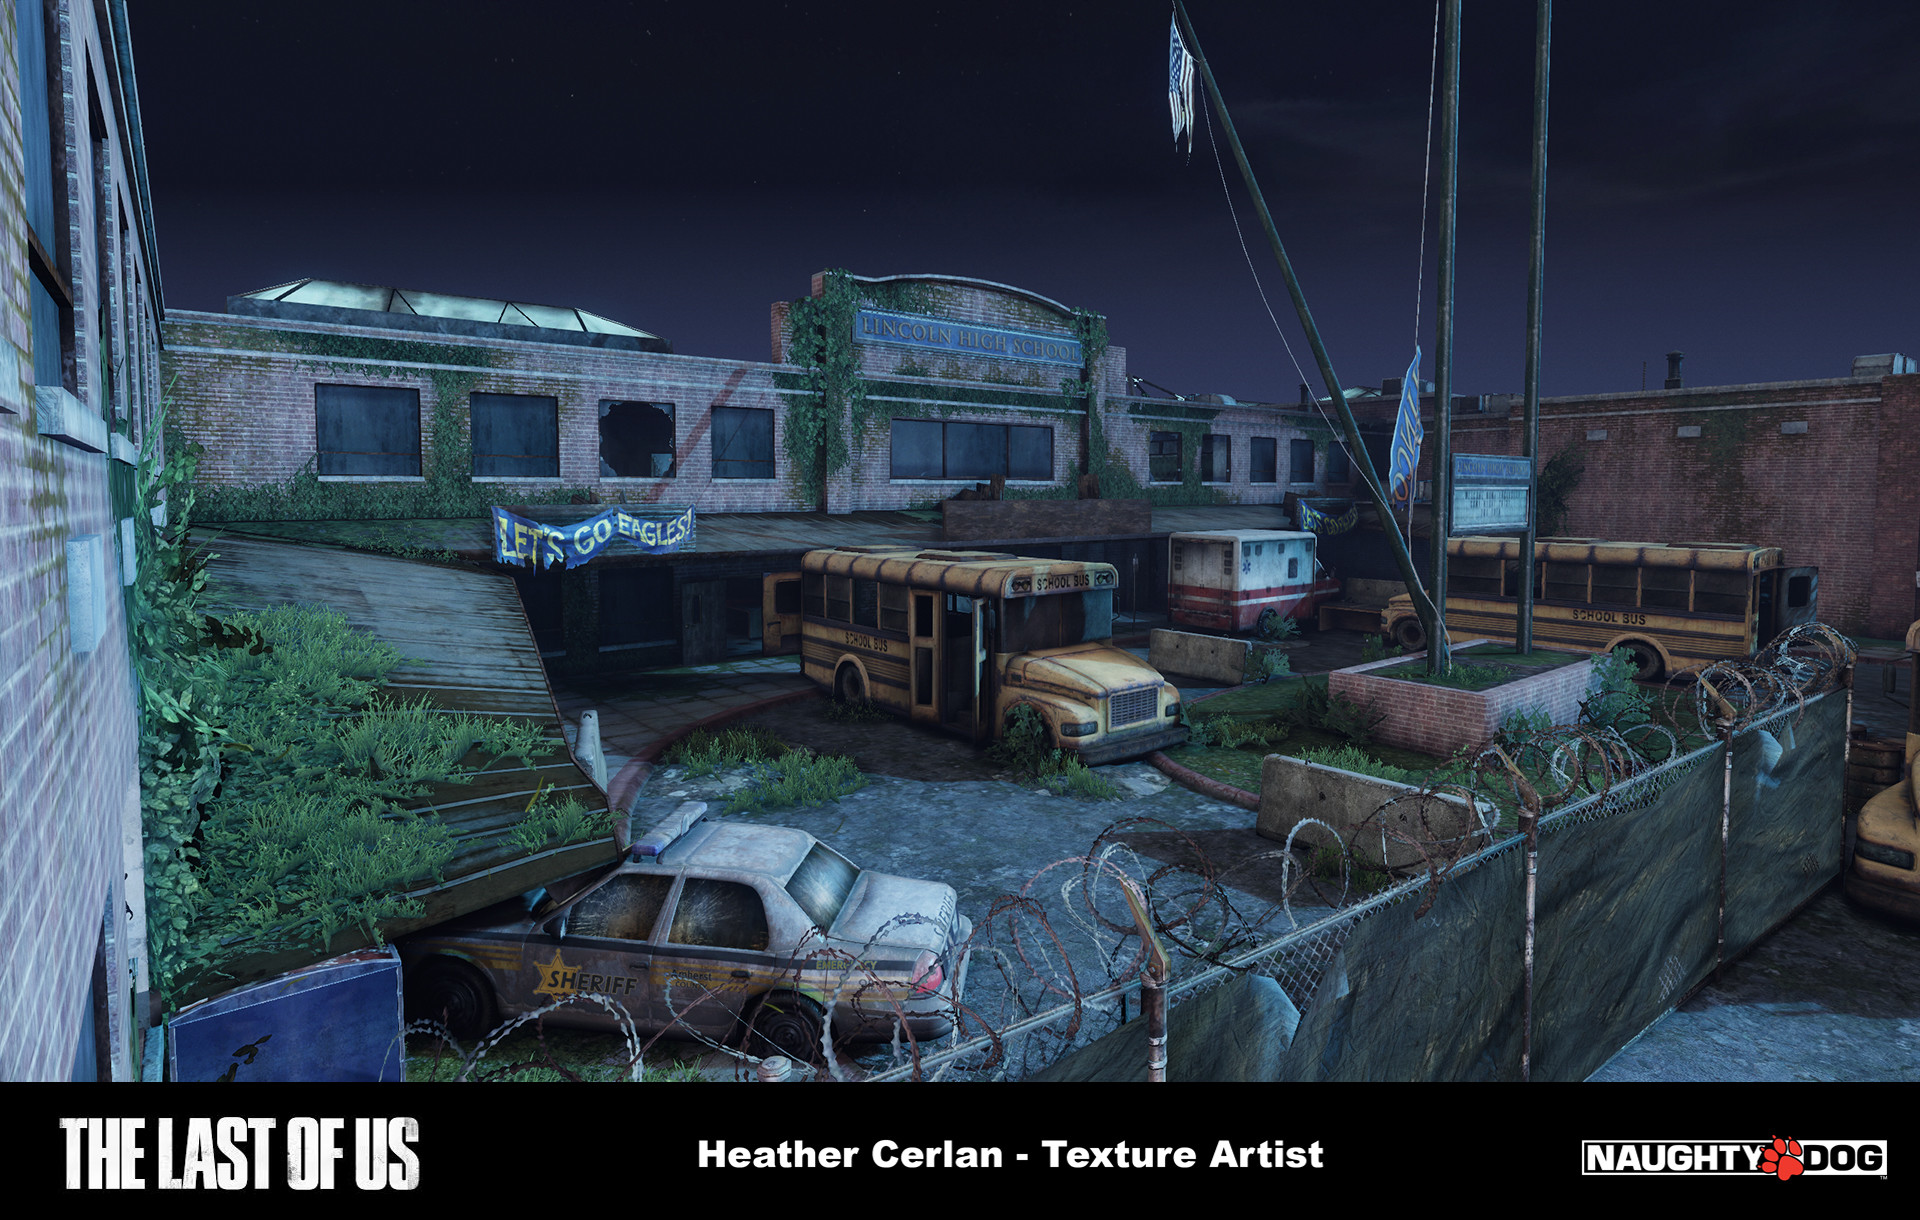 ArtStation - The Last Of Us - Multiplayer, HEATHER CERLAN